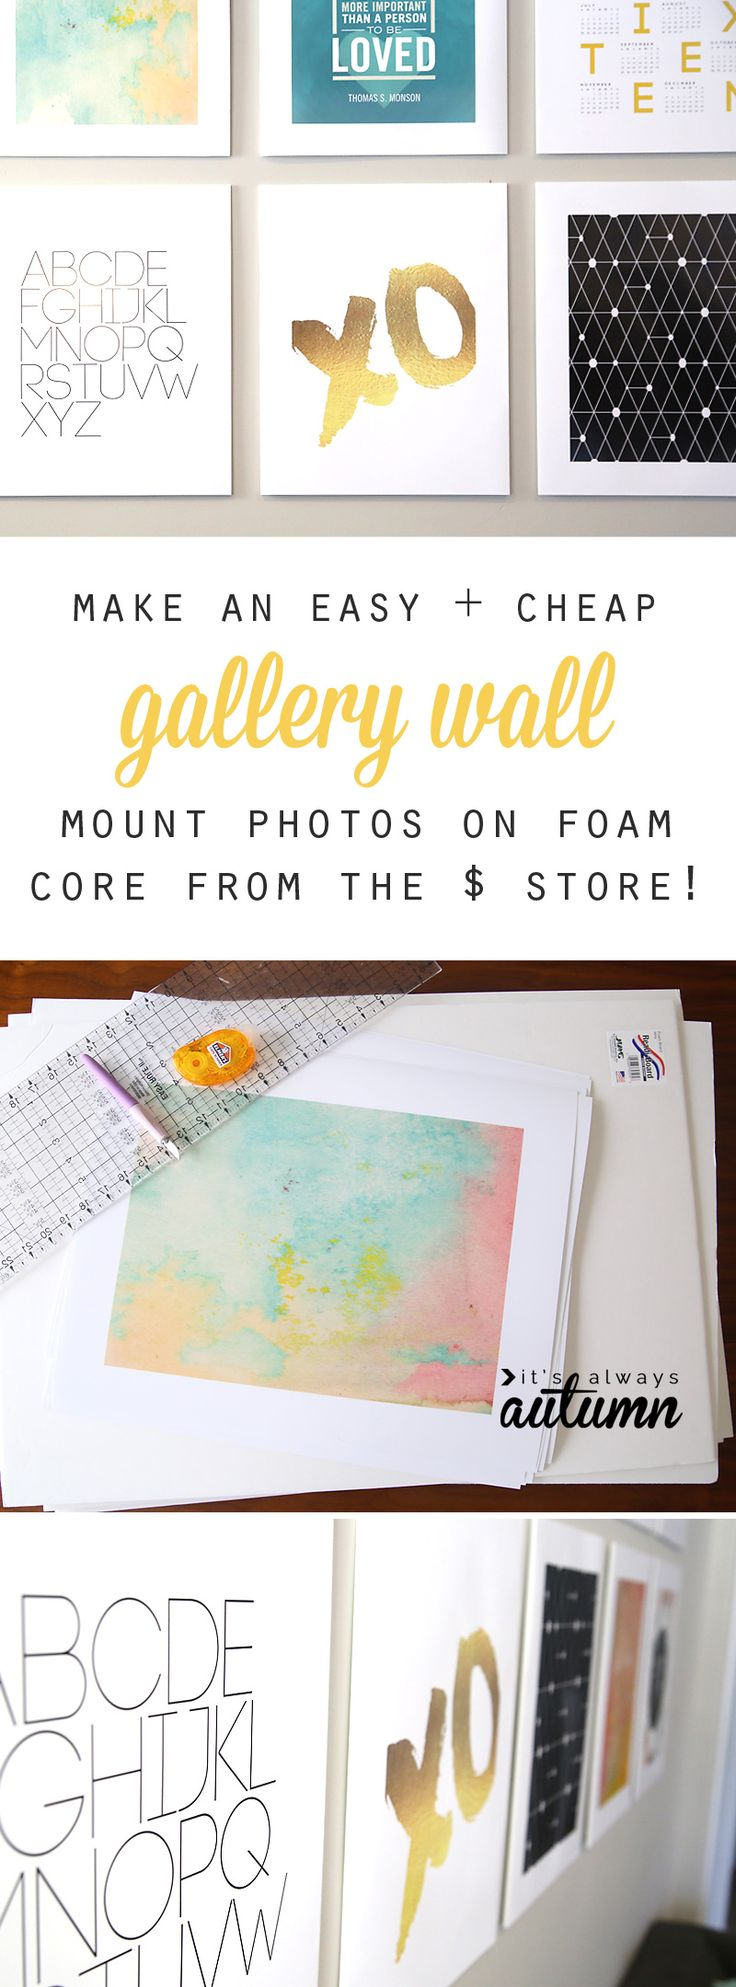 Save money on your gallery wall by mounting large photos on foam core board from the dollar store instead of framing. It's cheap, easy, and looks great! How to make a modern gallery wall.